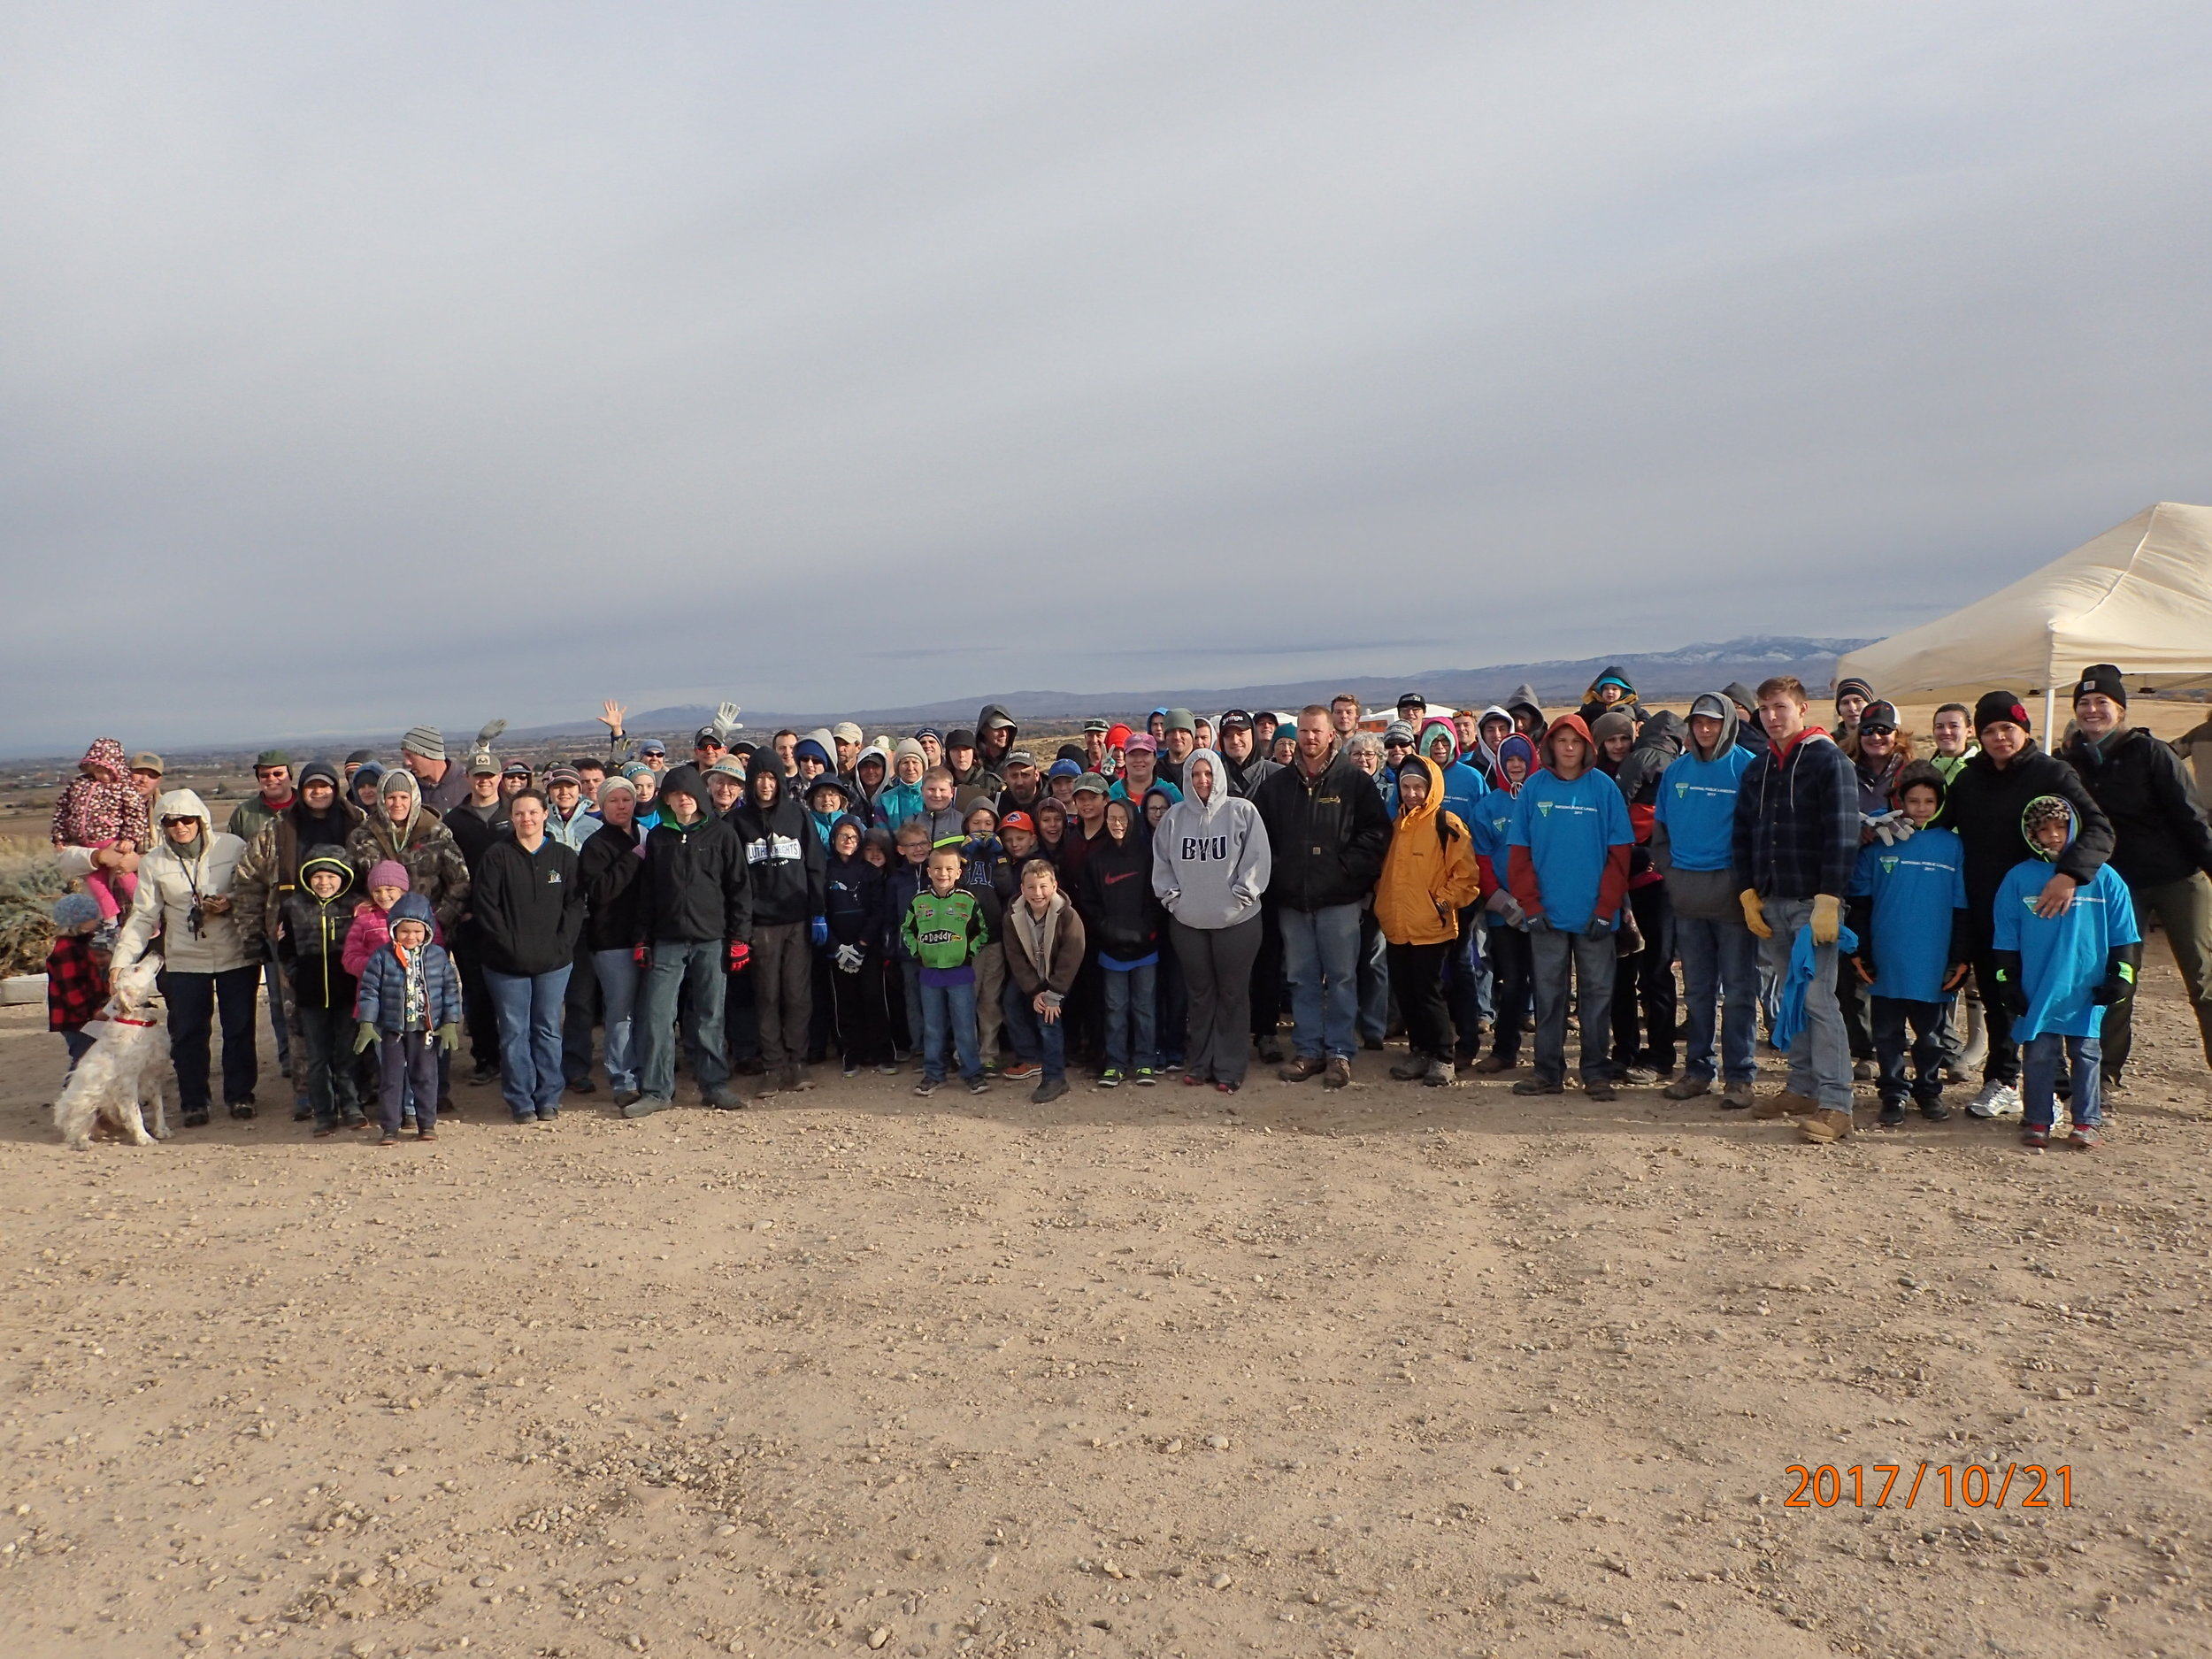 In celebration of National Public Lands Day, volunteers joined the youth from the Duck Valley Reservation for a day of restoration work at Kuna Butte.